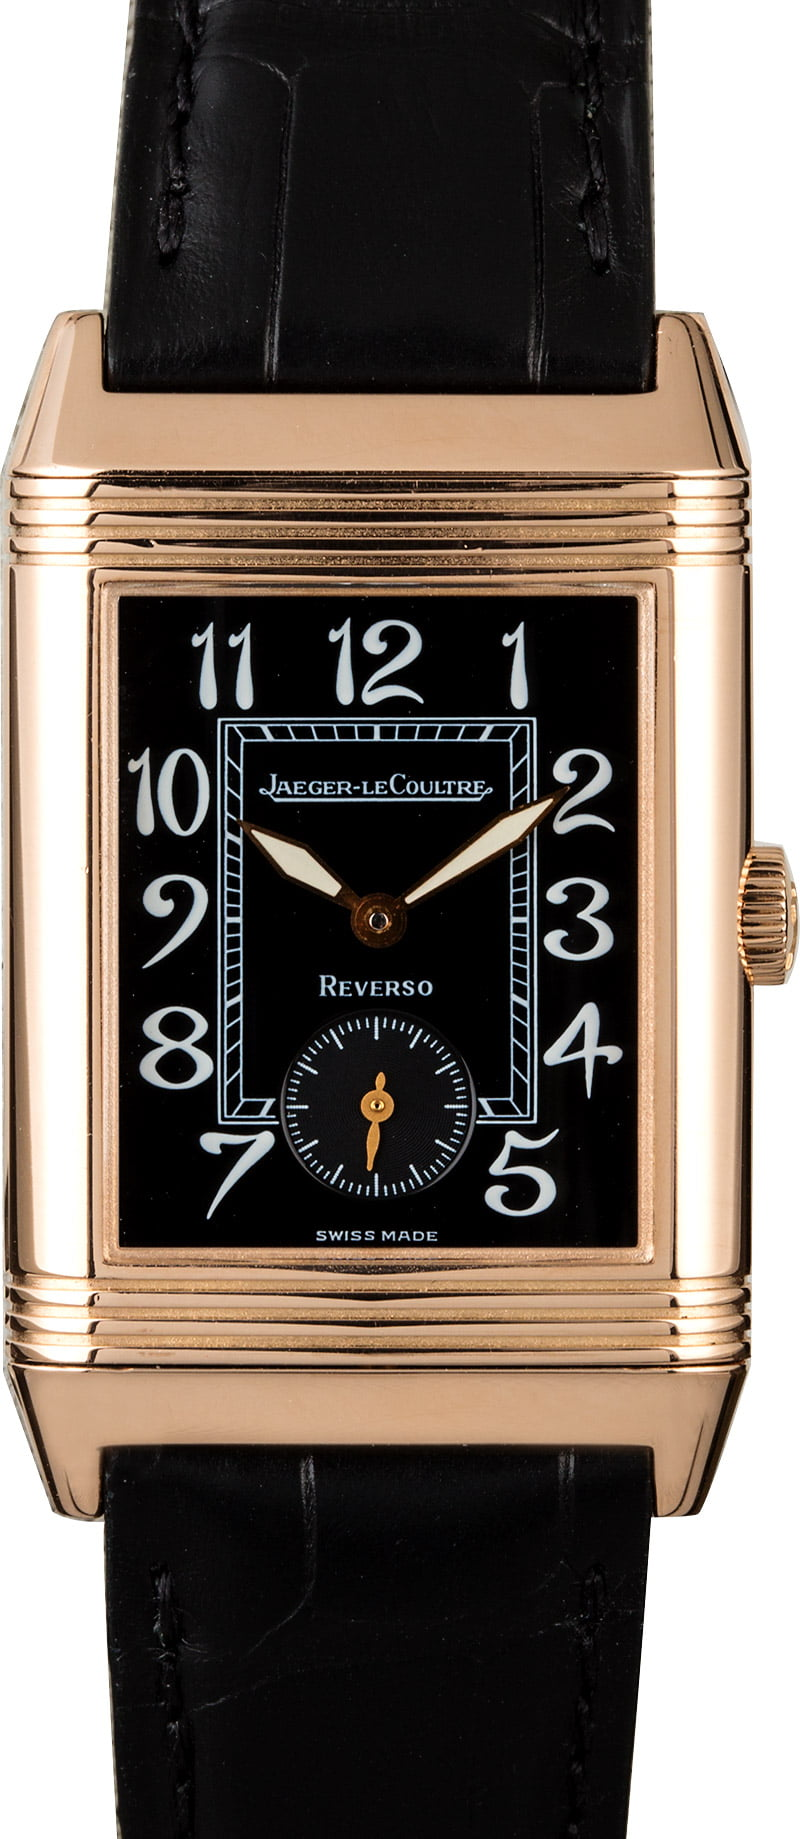 7 Most Iconic Mens Luxury Watches Every Collector Should Own JLC Reverso